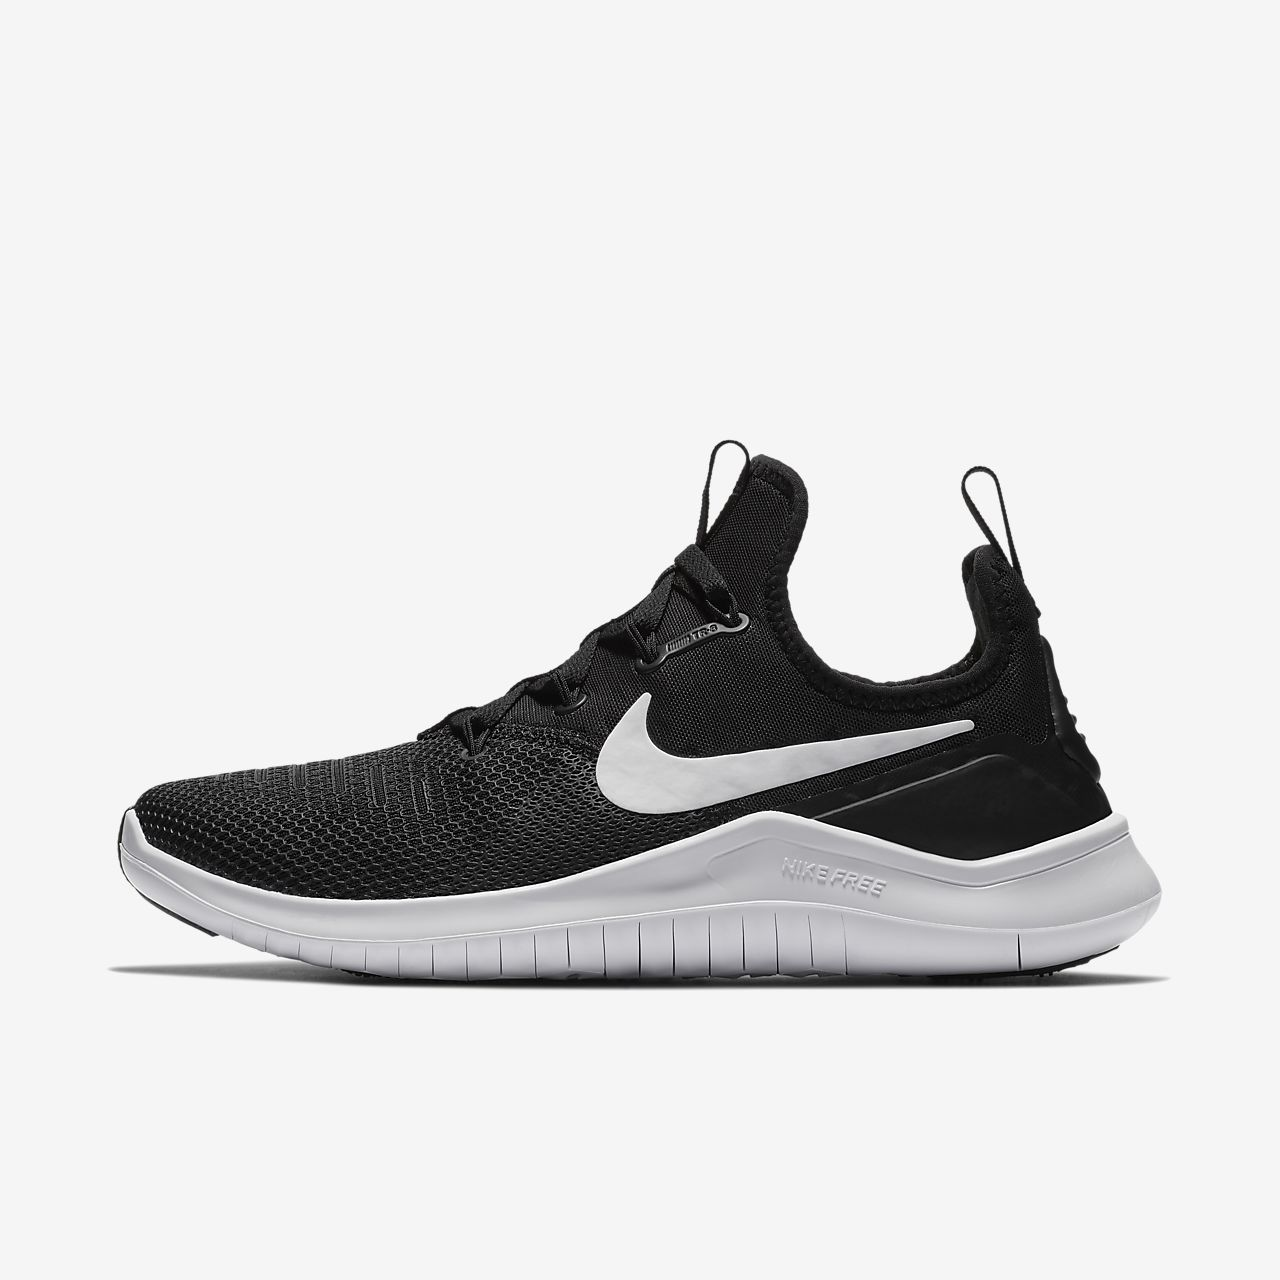 official photos b39b6 8b305 ... Chaussure de cross-training, HIIT et fitness Nike Free TR8 pour Femme